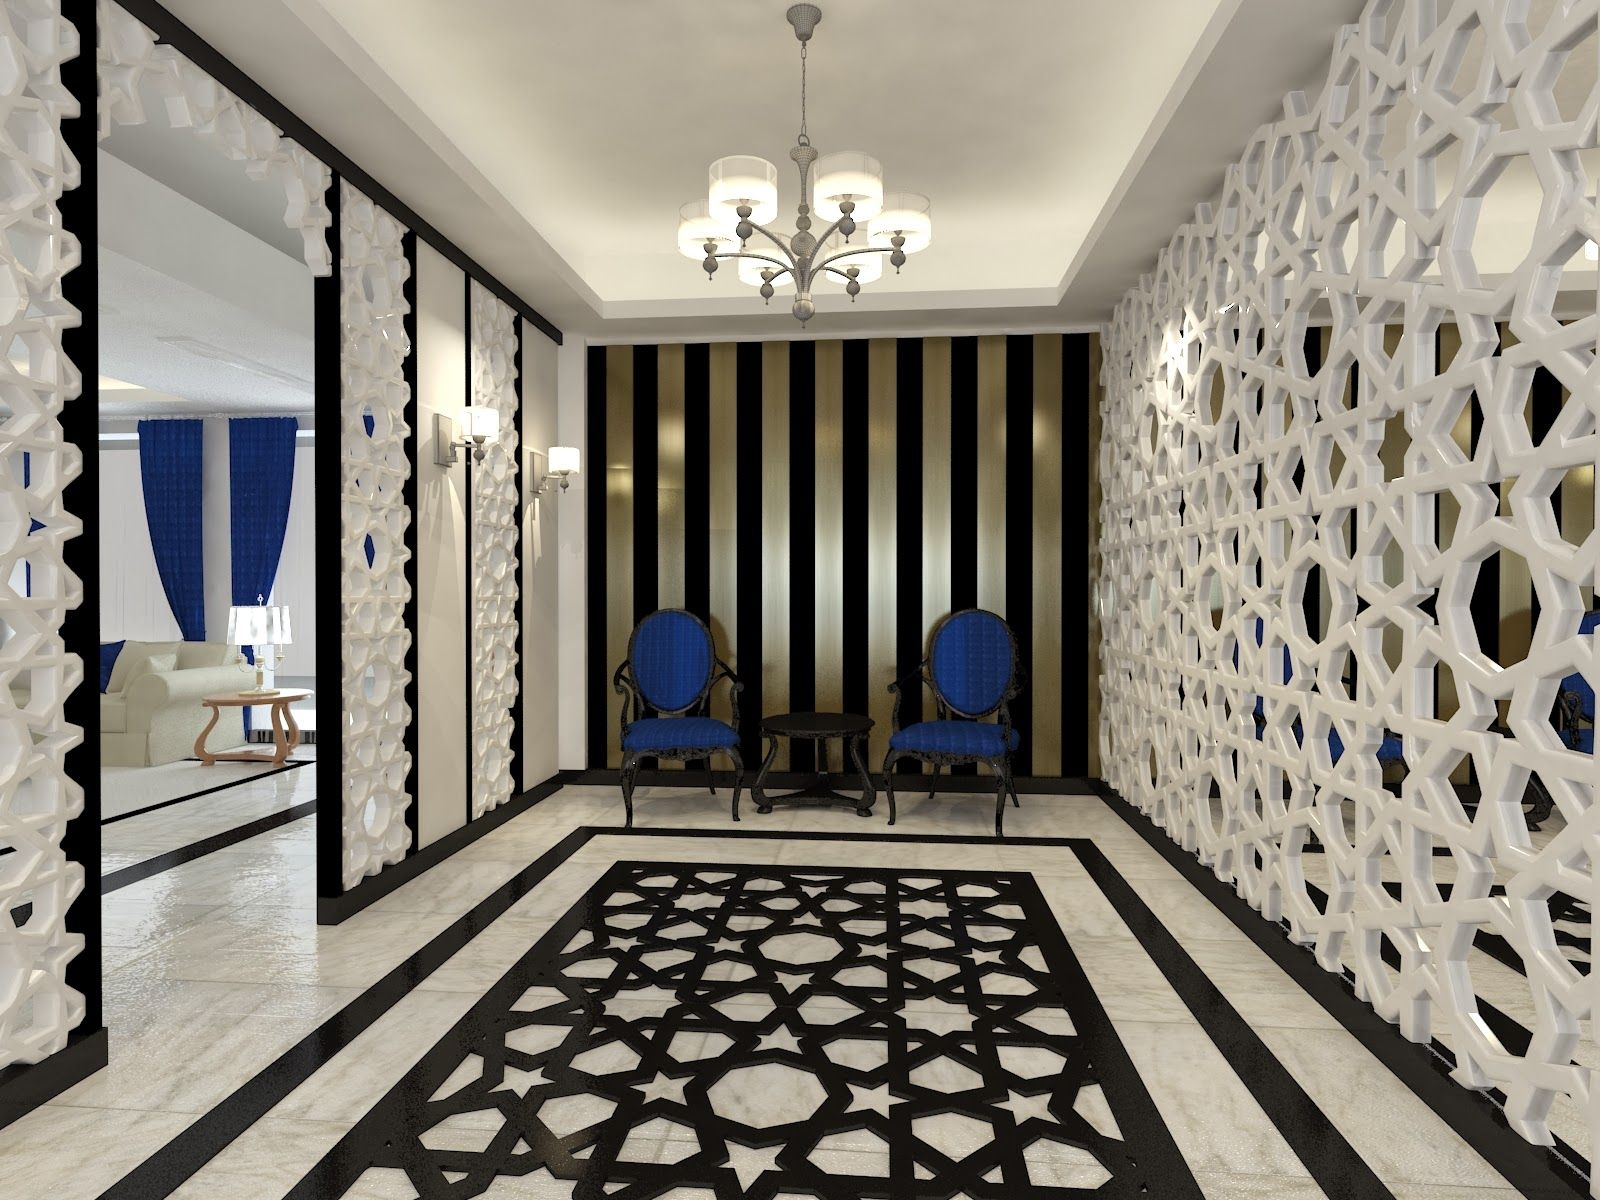 Inspirations modern islamic interior and modern islamic interior islamic modern house of beys - Contemporary decor ...